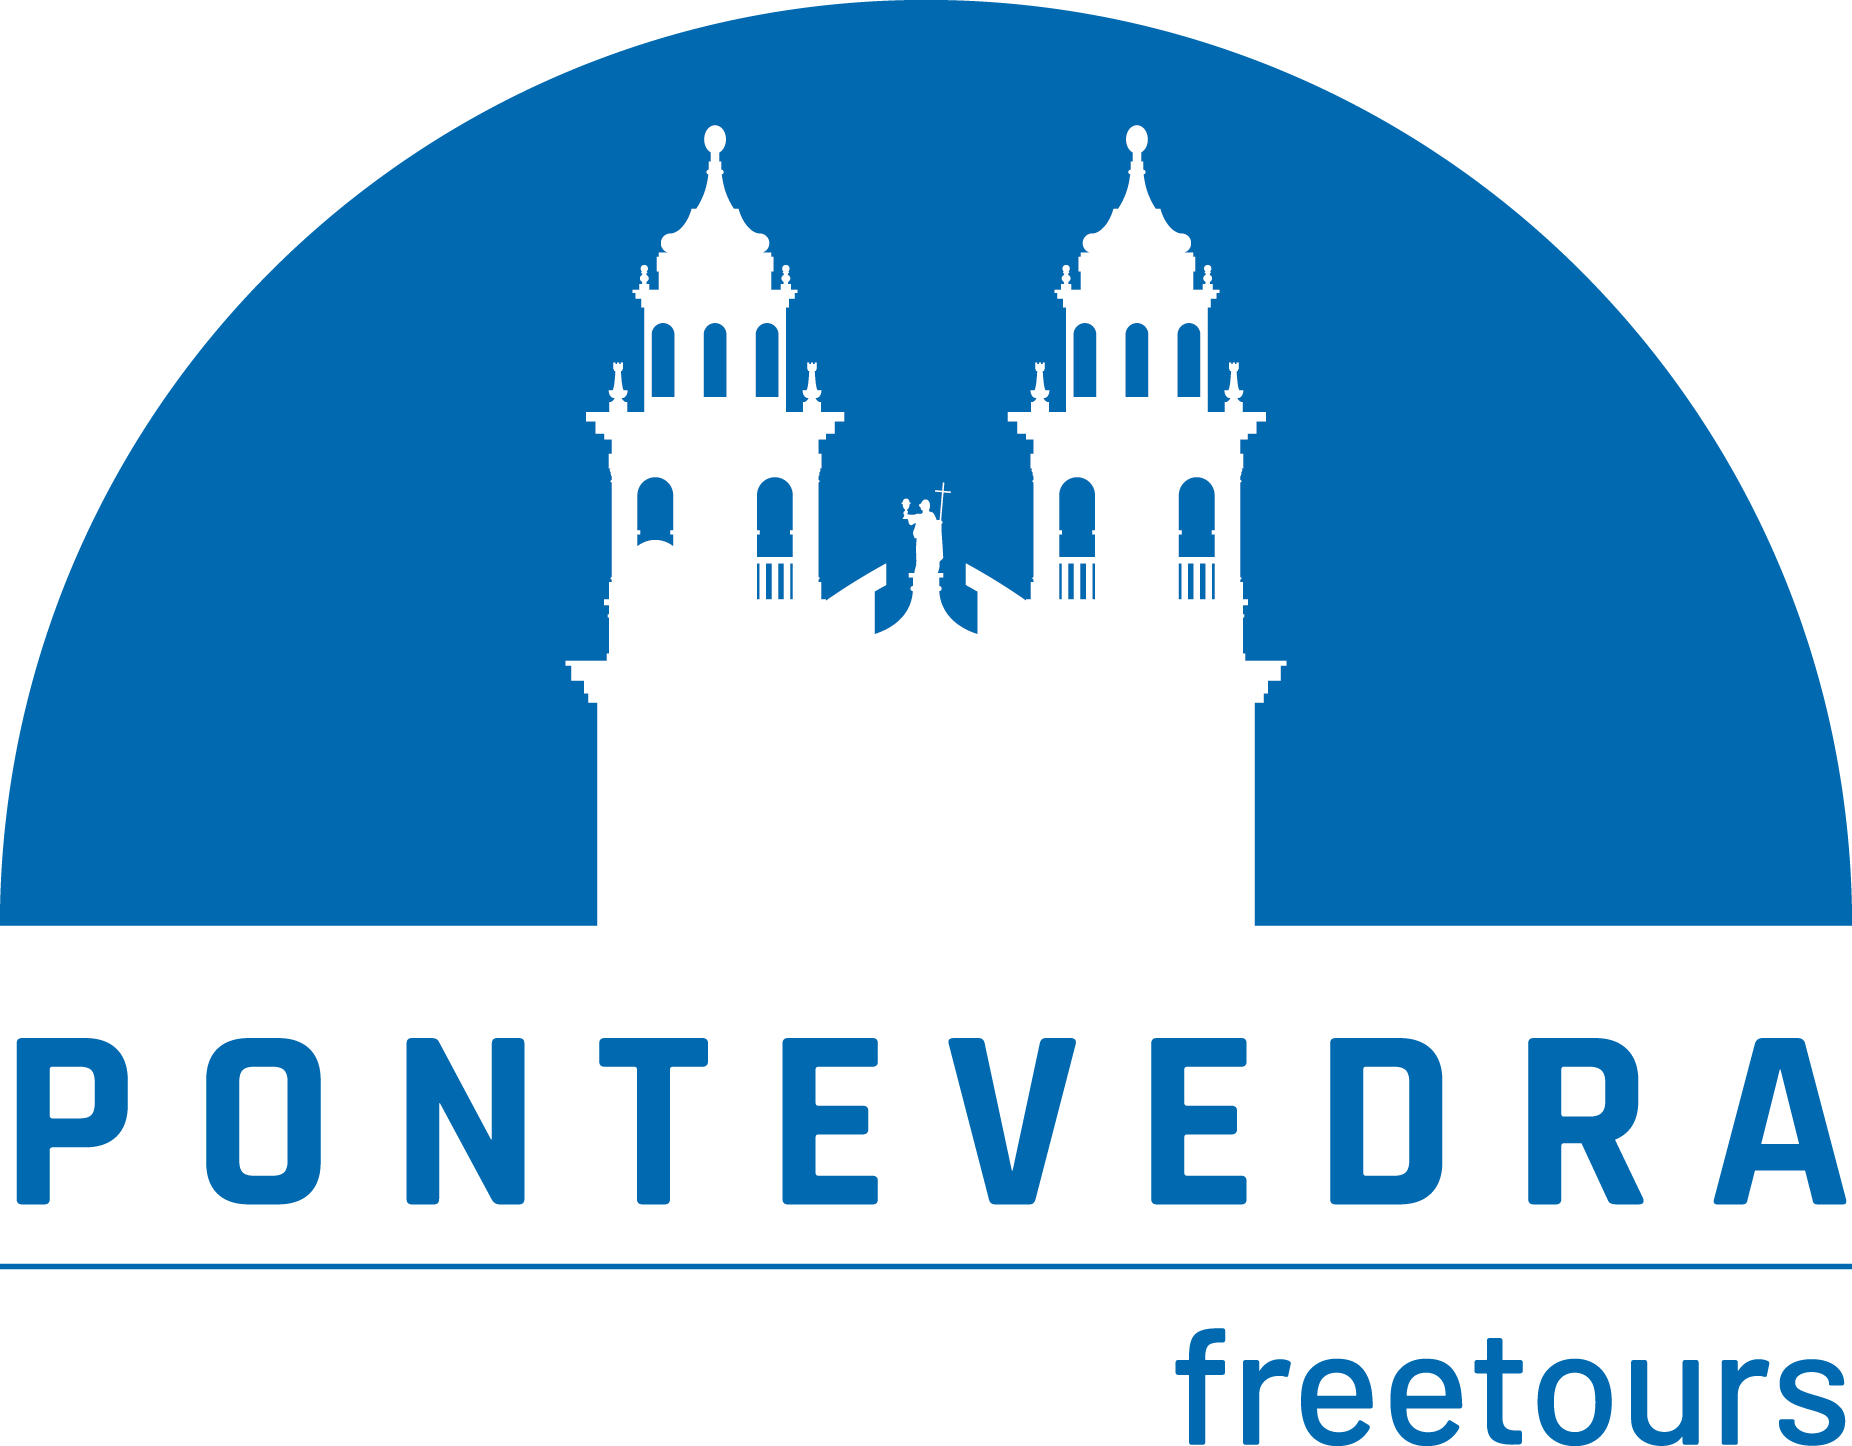 Guided tours in Pontevedra